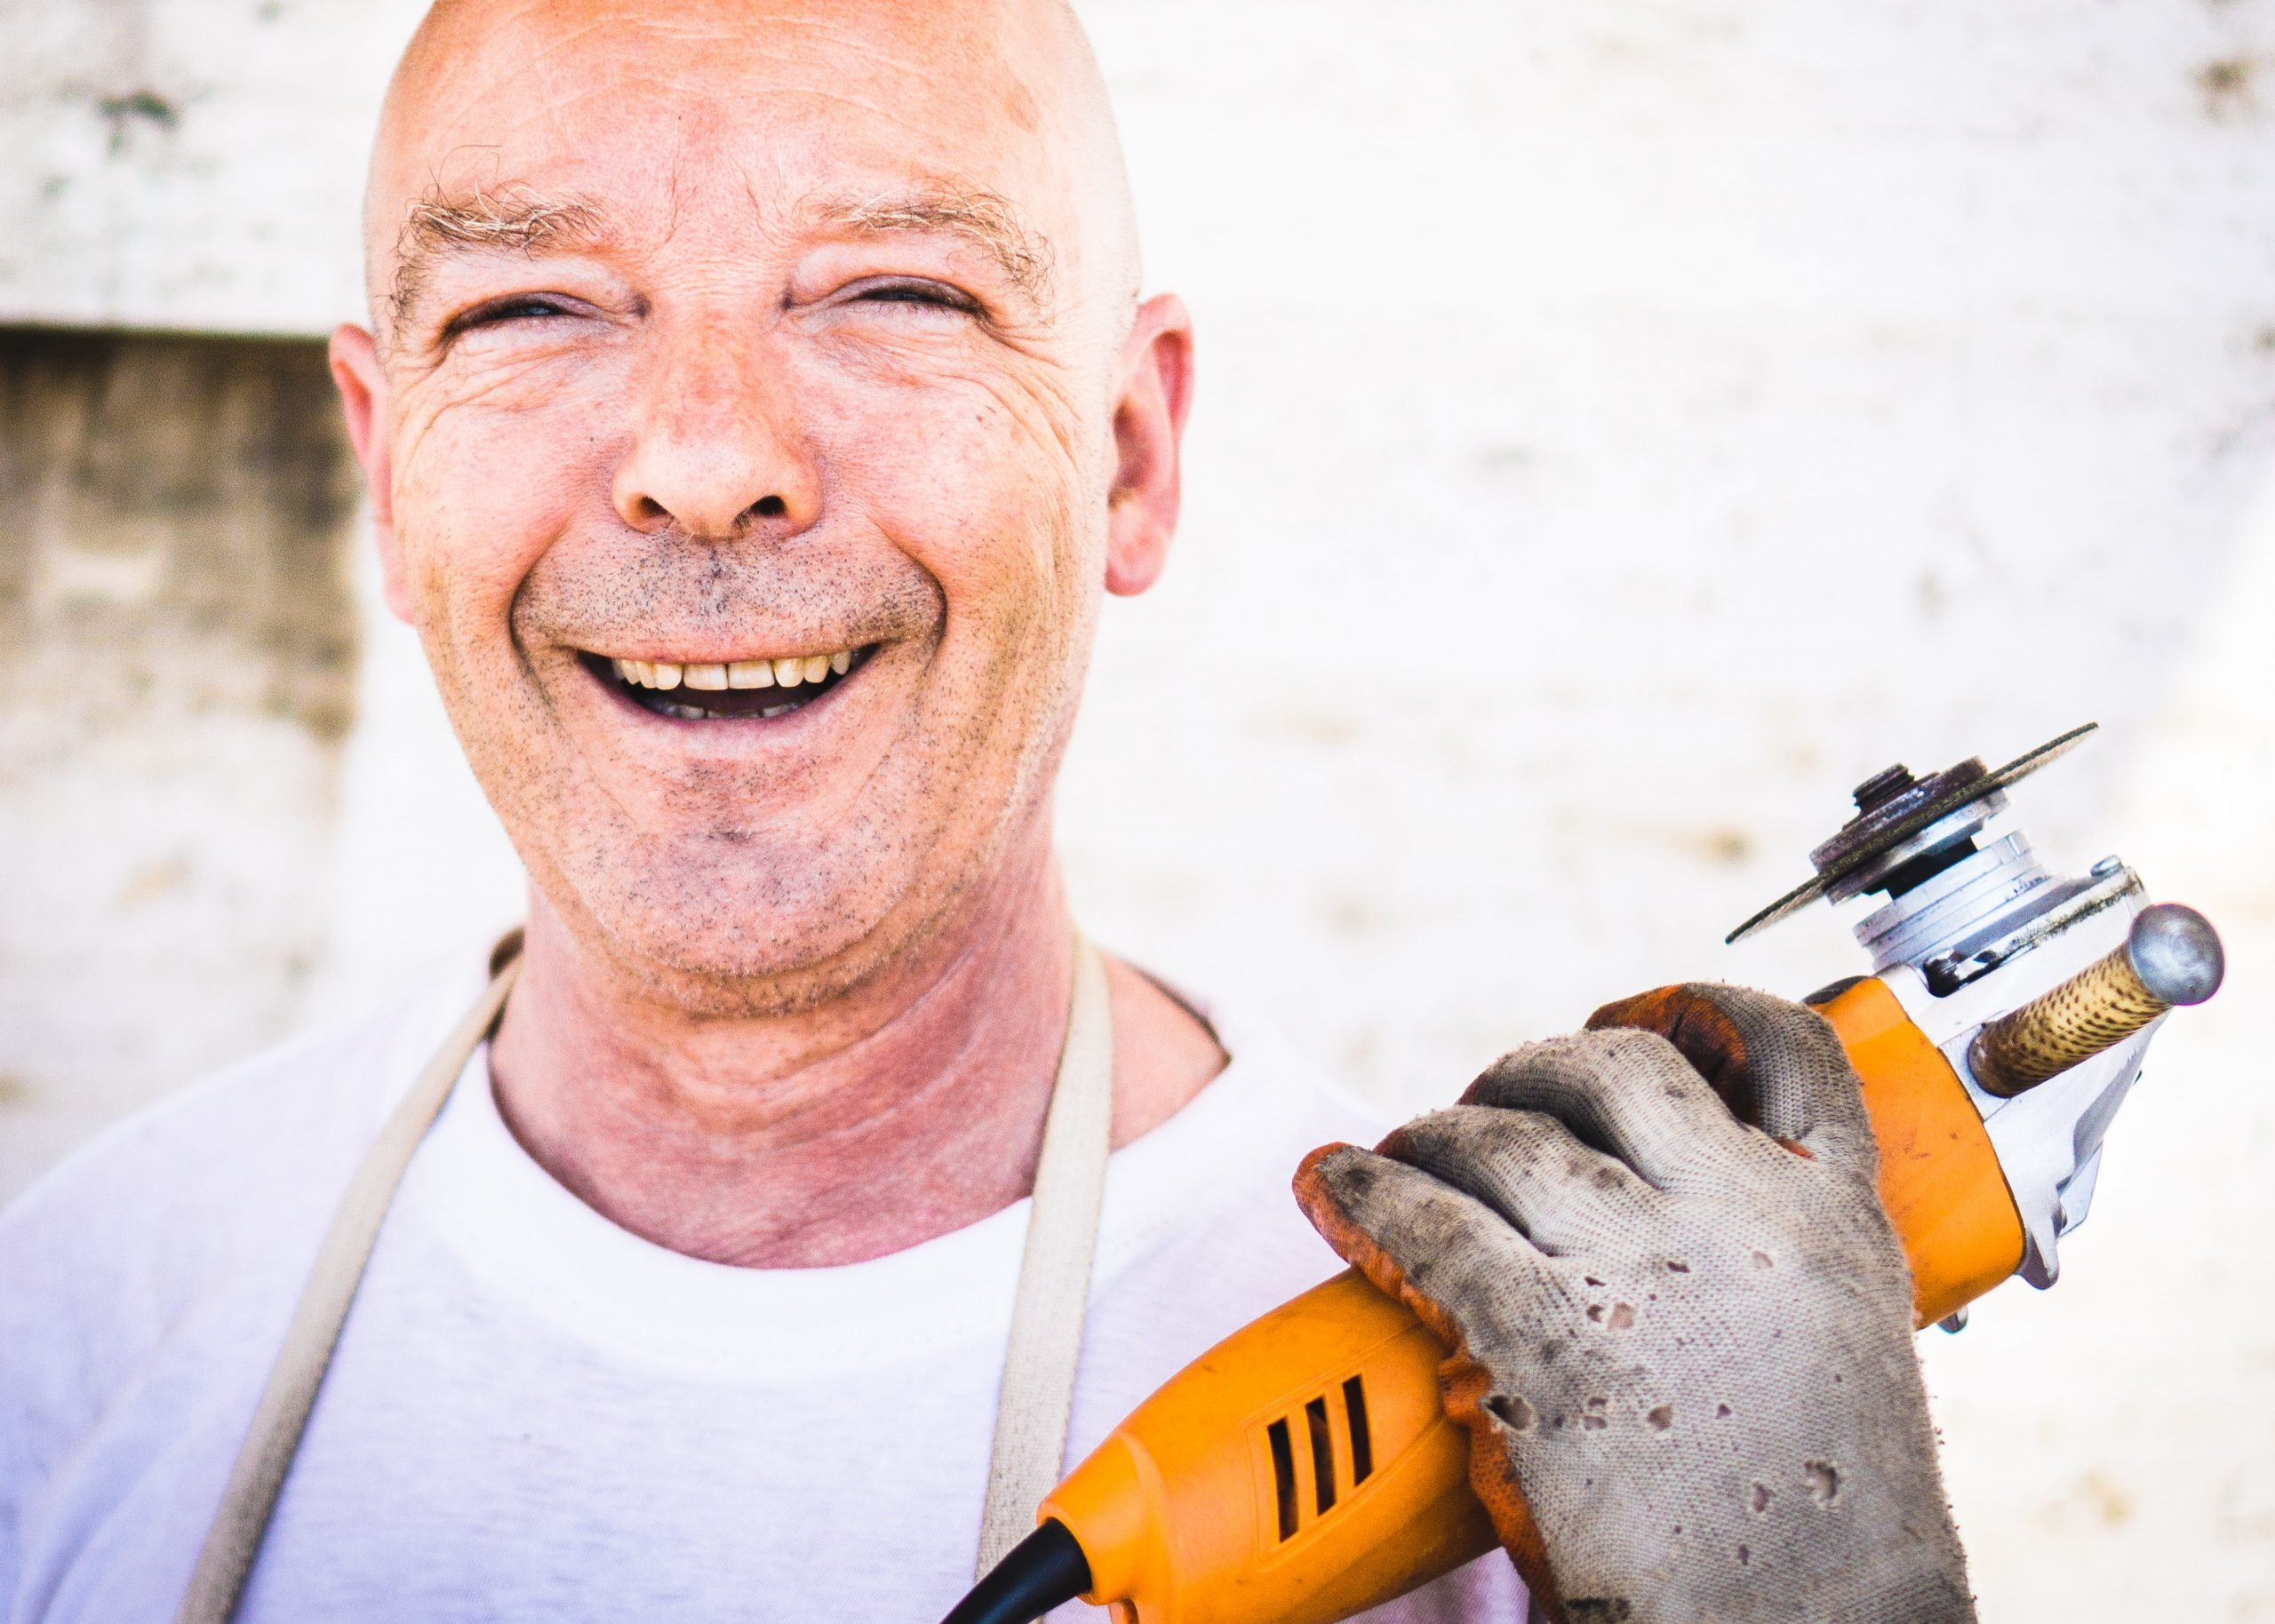 An image of a happy tradesperson holding a drill